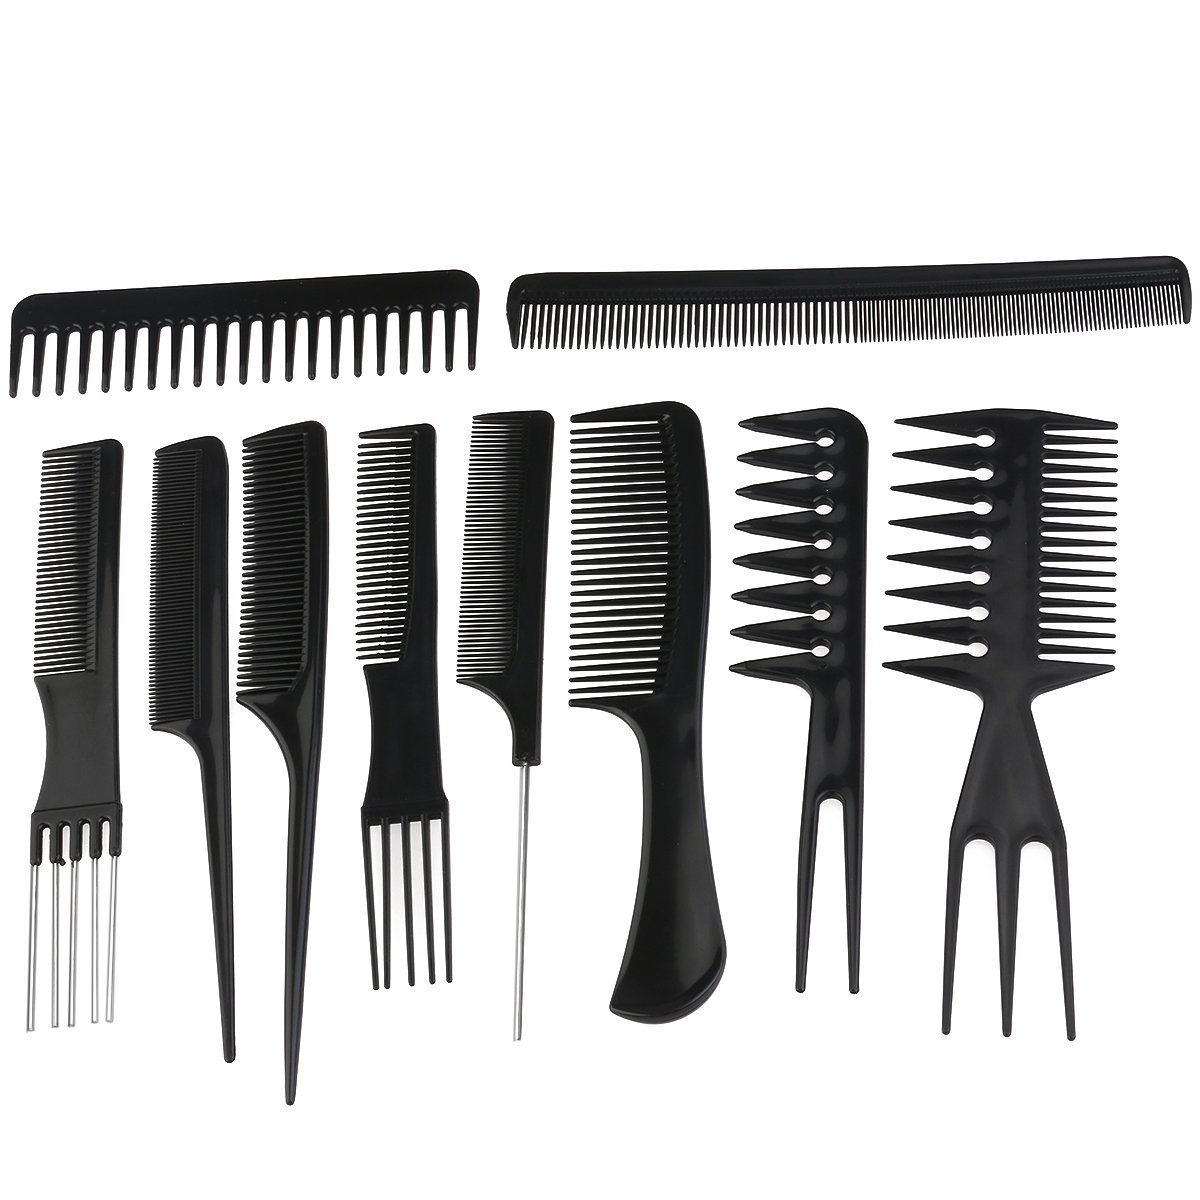 Rosenice Professional Salon Hair Styling Combs Hairdresser Accessories Tools Set 10 Pieces